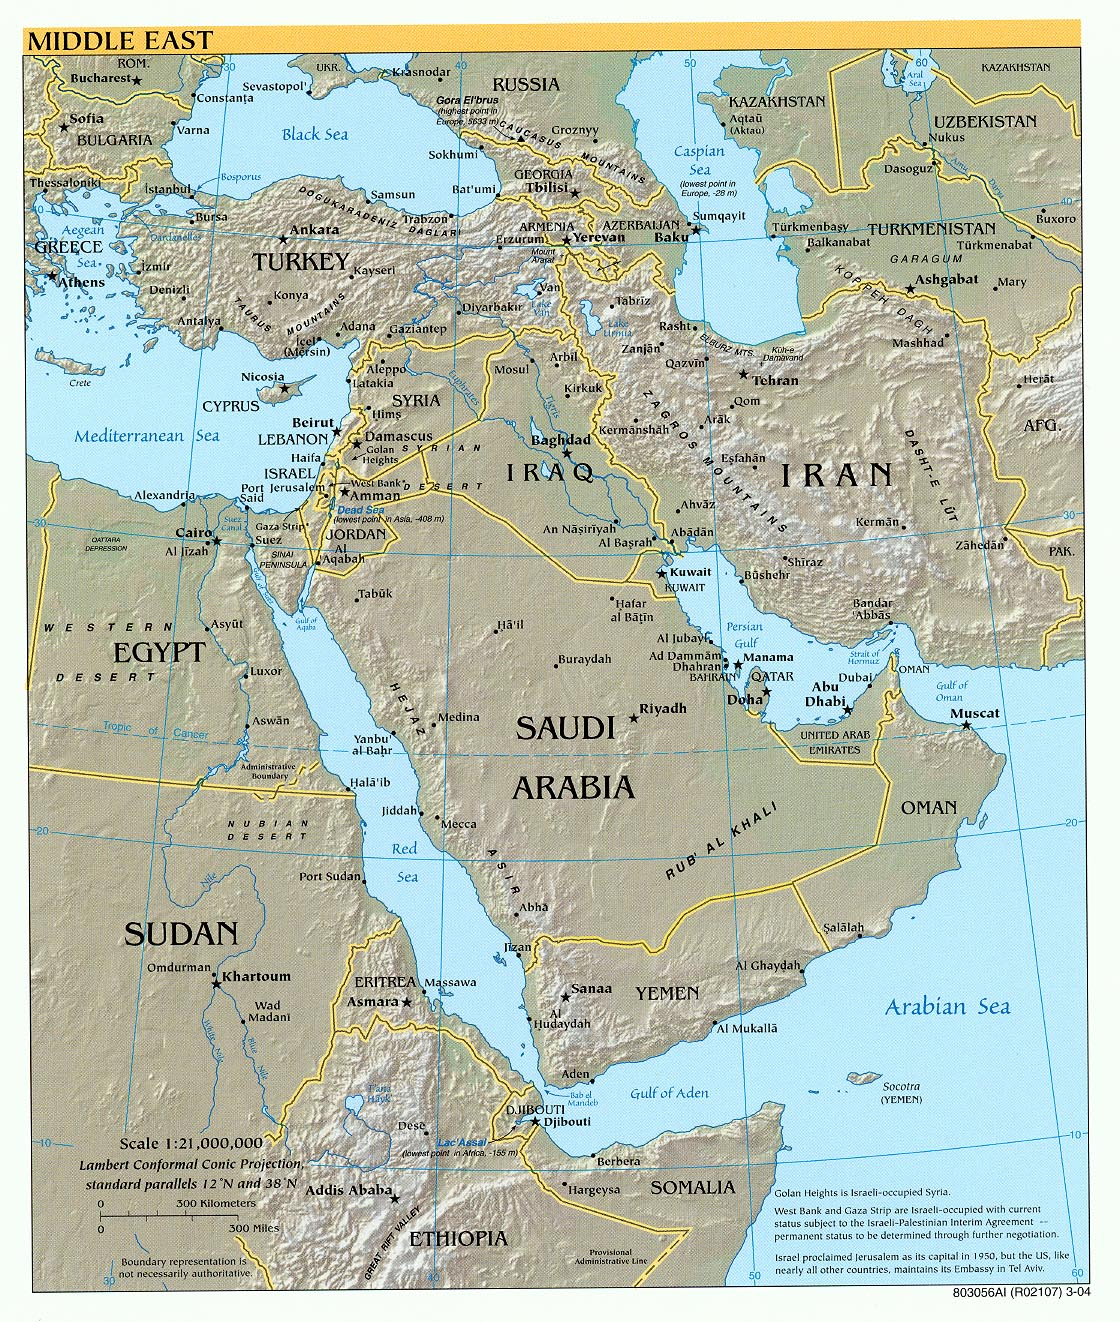 Middle East physical map 2004